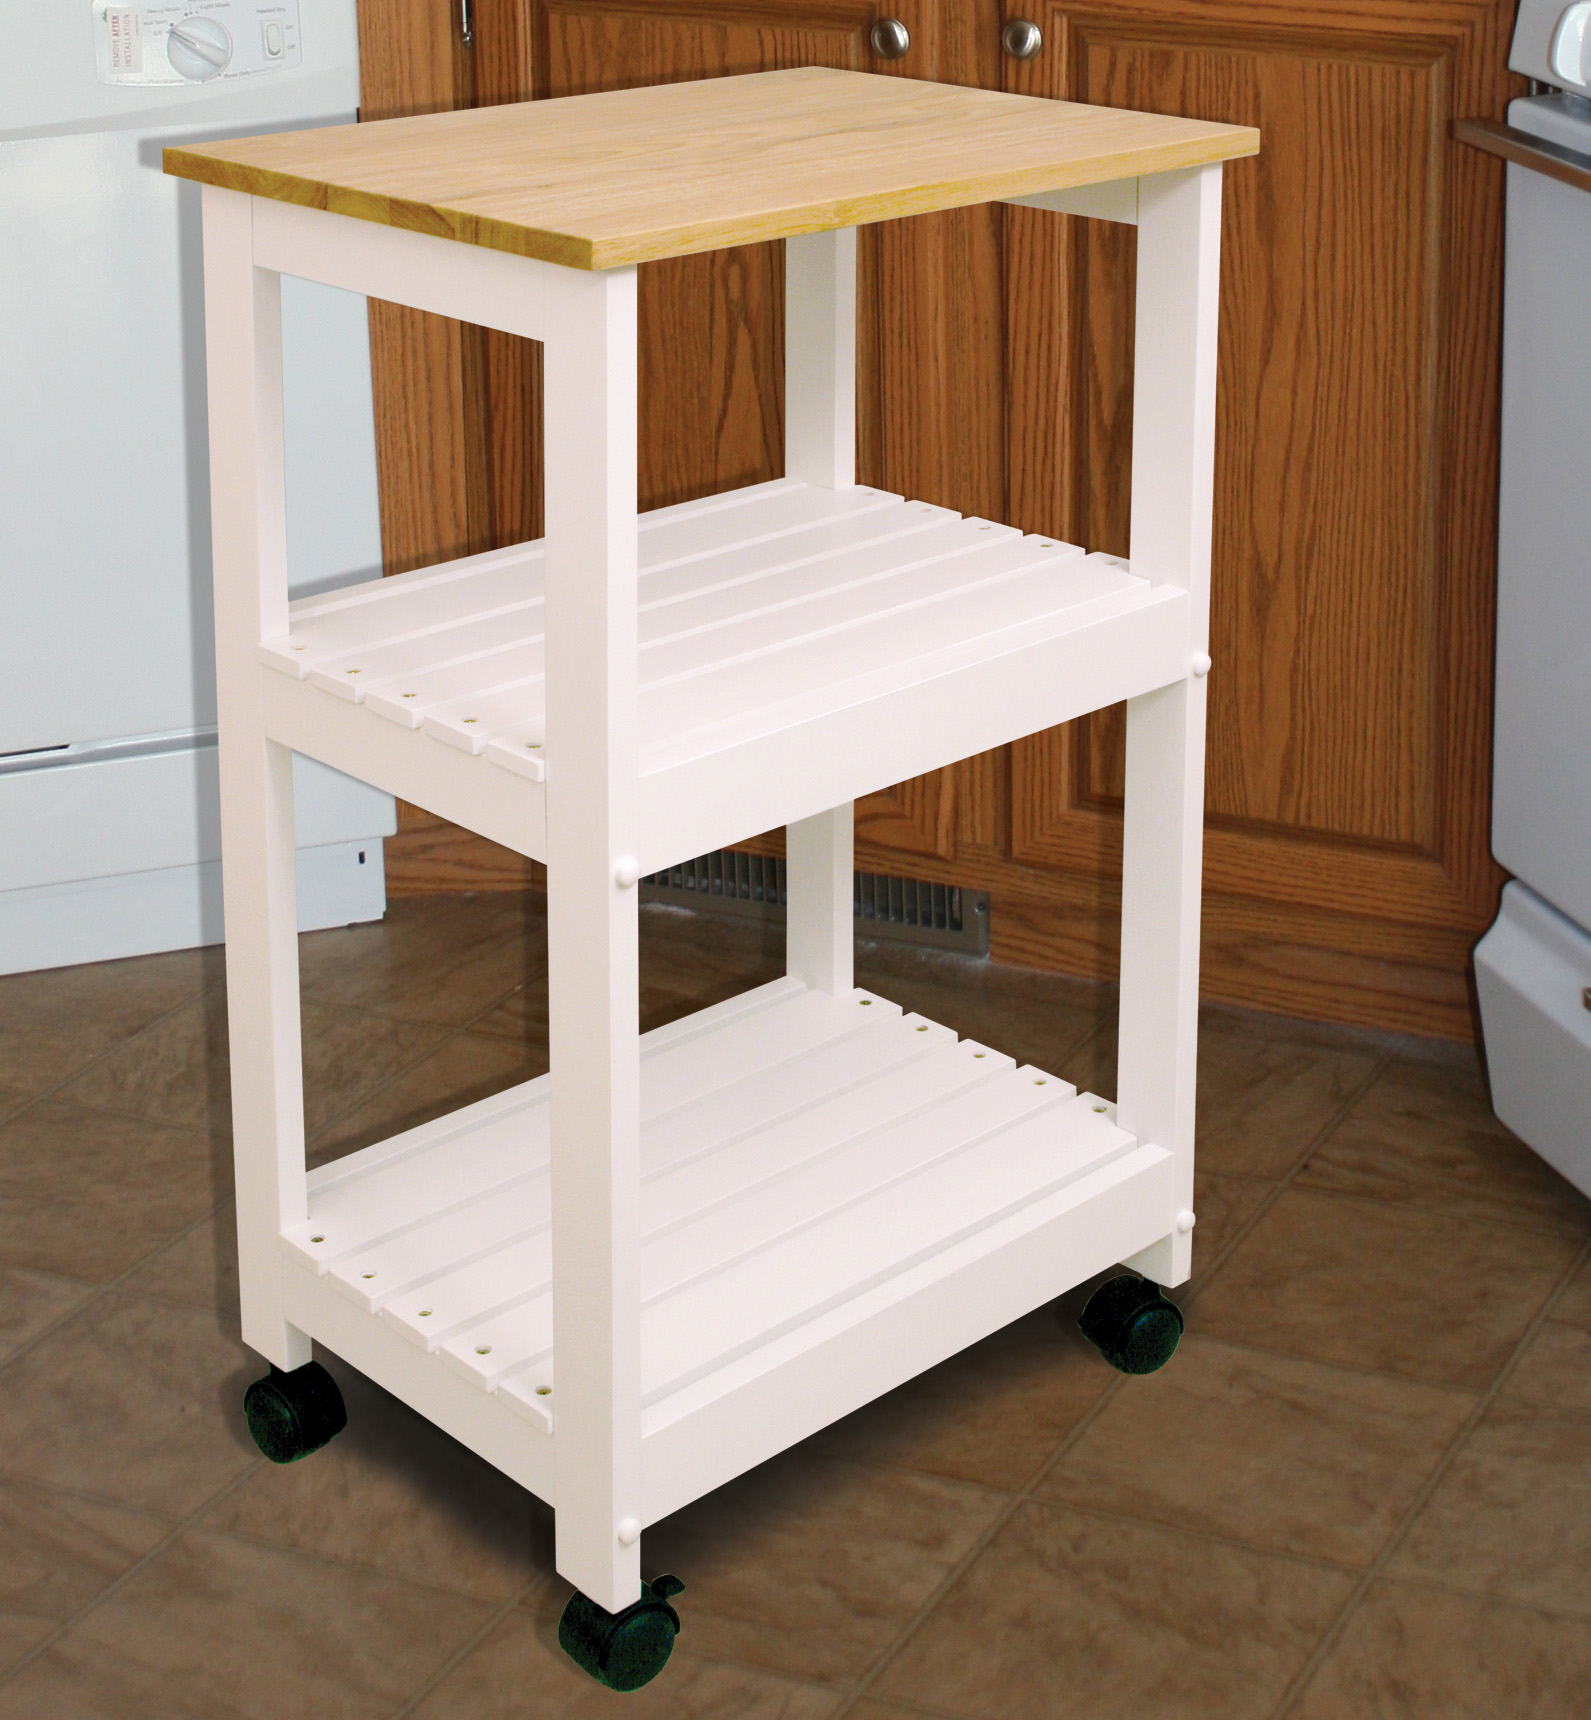 utility kitchen cart table counter height catskill craftsmen